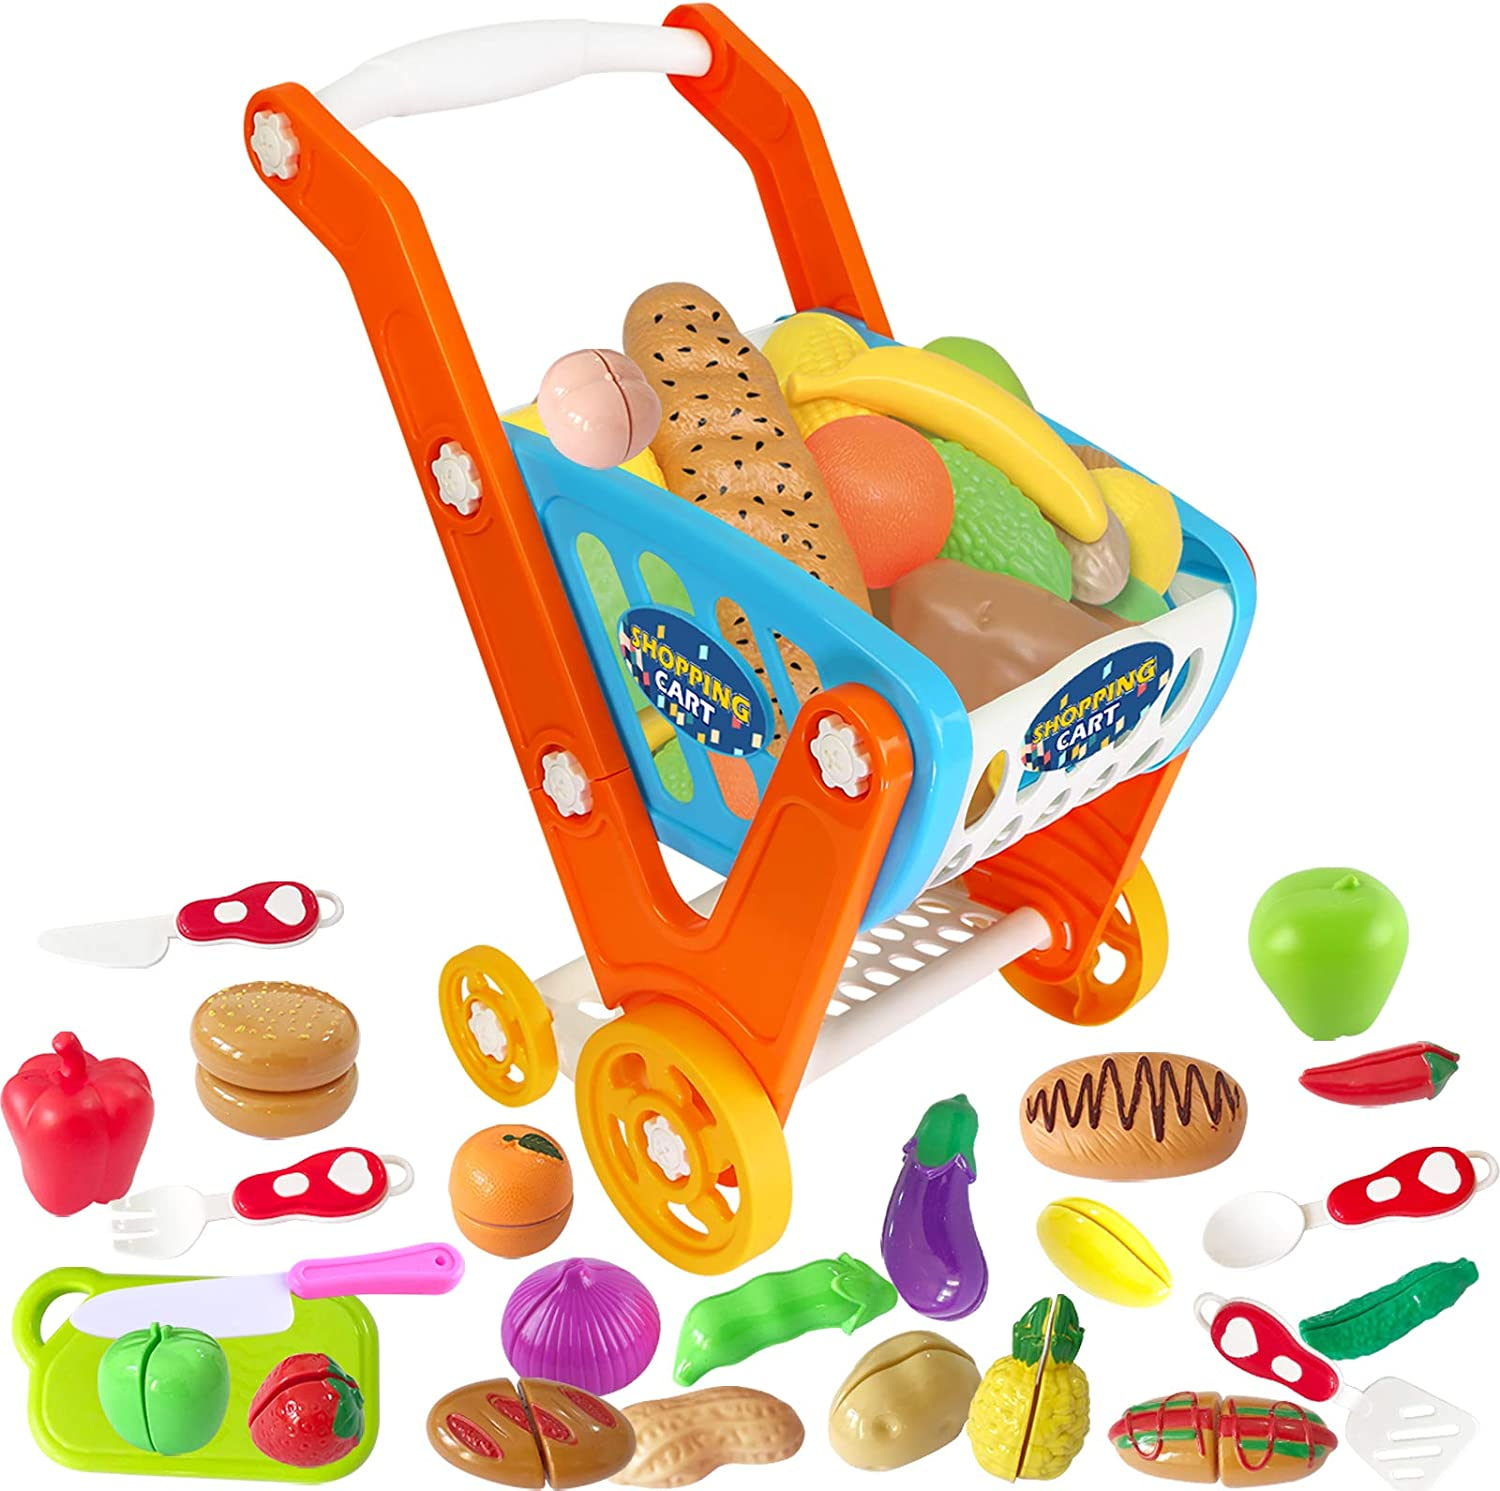 GRESAHOM Kids Shopping Cart,Toddler Shopping Trolley,Large Size Pretend Play Food Set Includes 33pcs Grocery Fruits Vegetables Cutting Board Accessories for 3+ Years Girls Boys